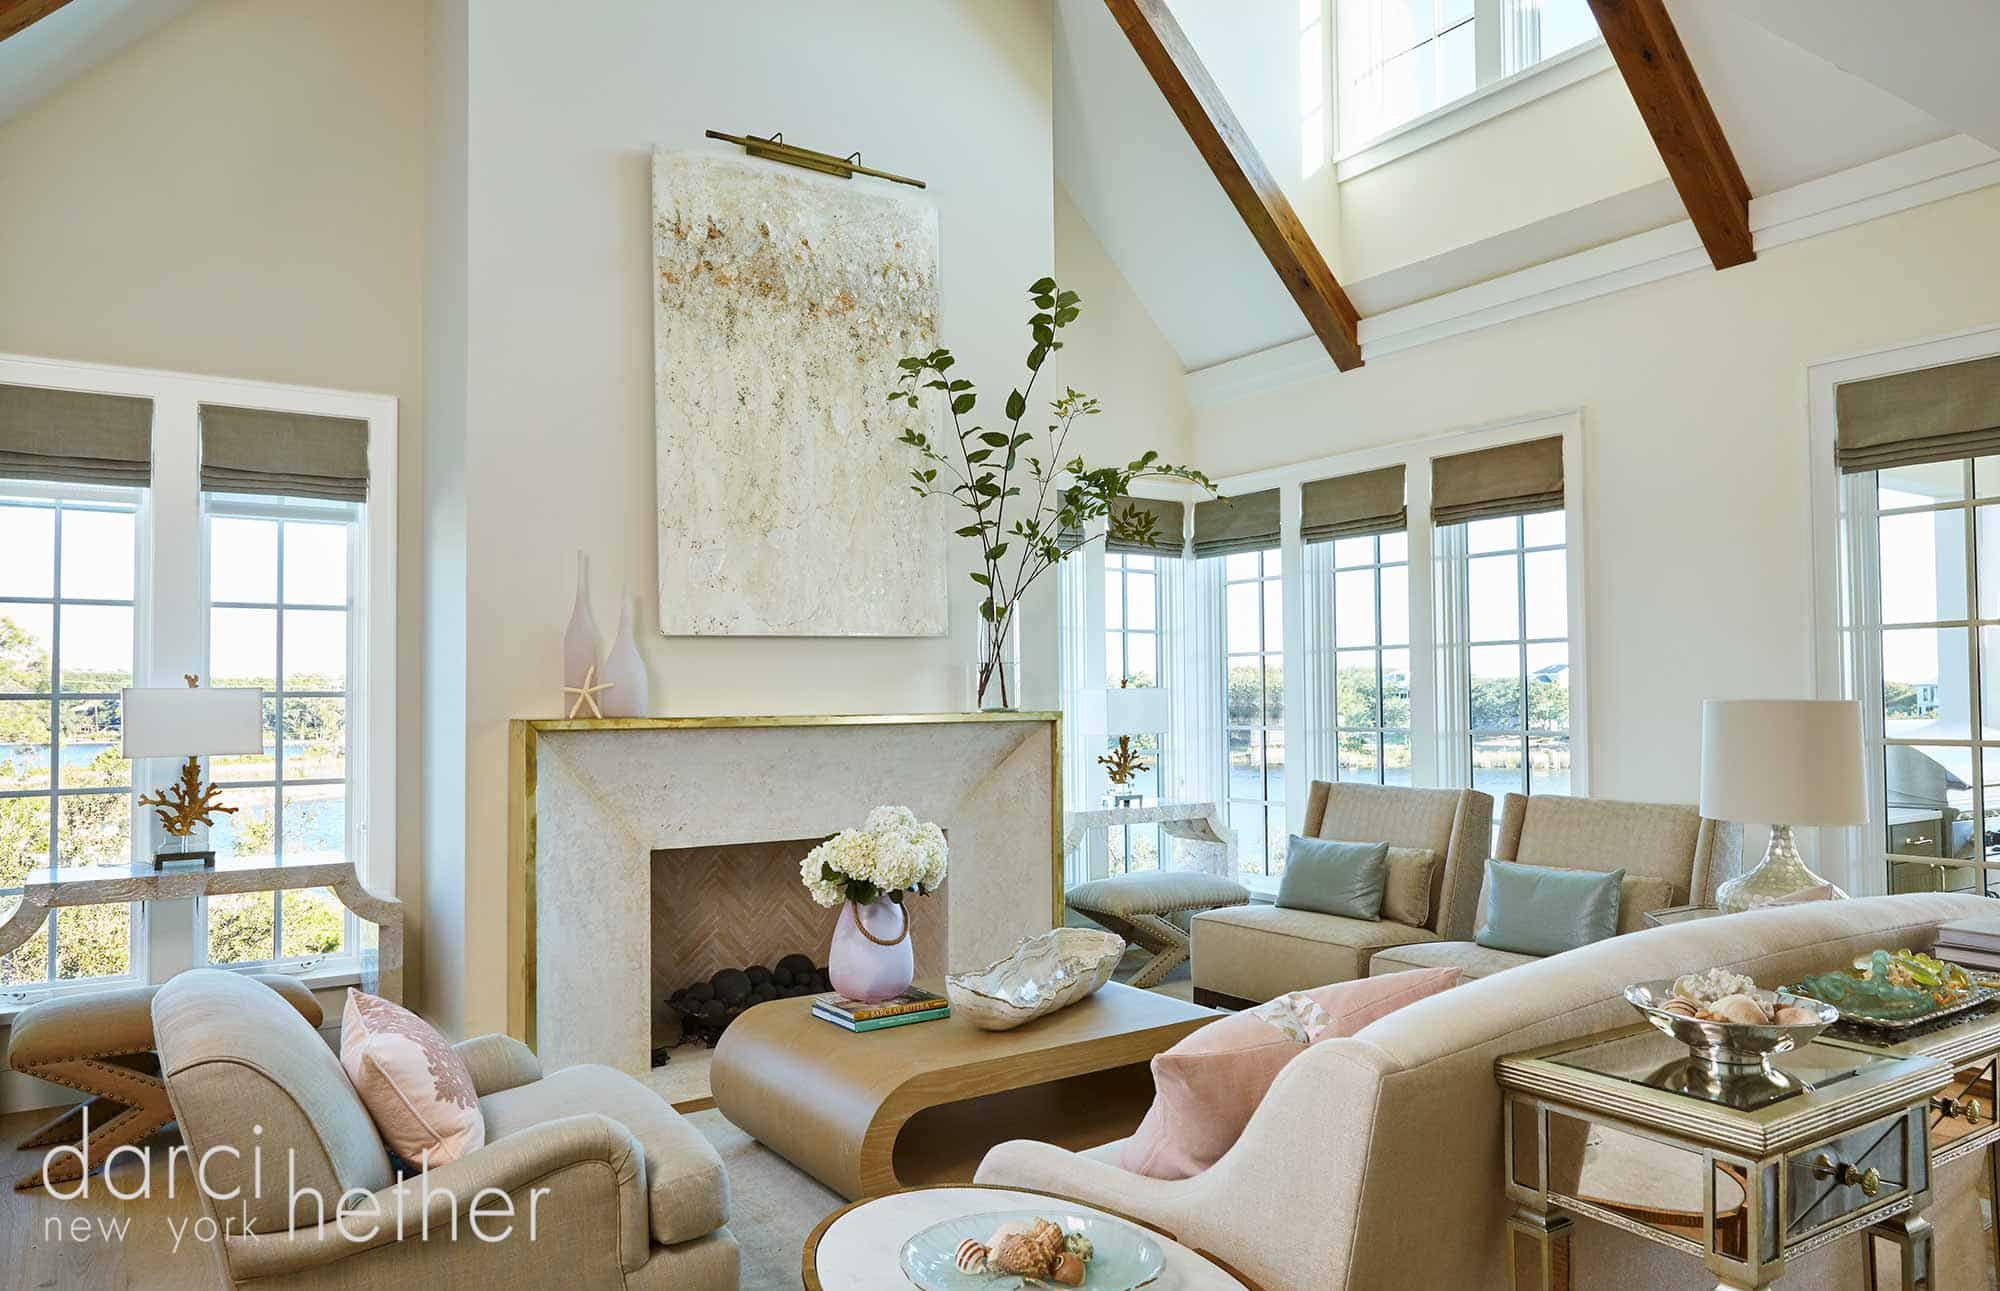 great room with beach tones and a gold metal fireplace surround and blush accents of watersound florida beach house designed by darci hether new york.